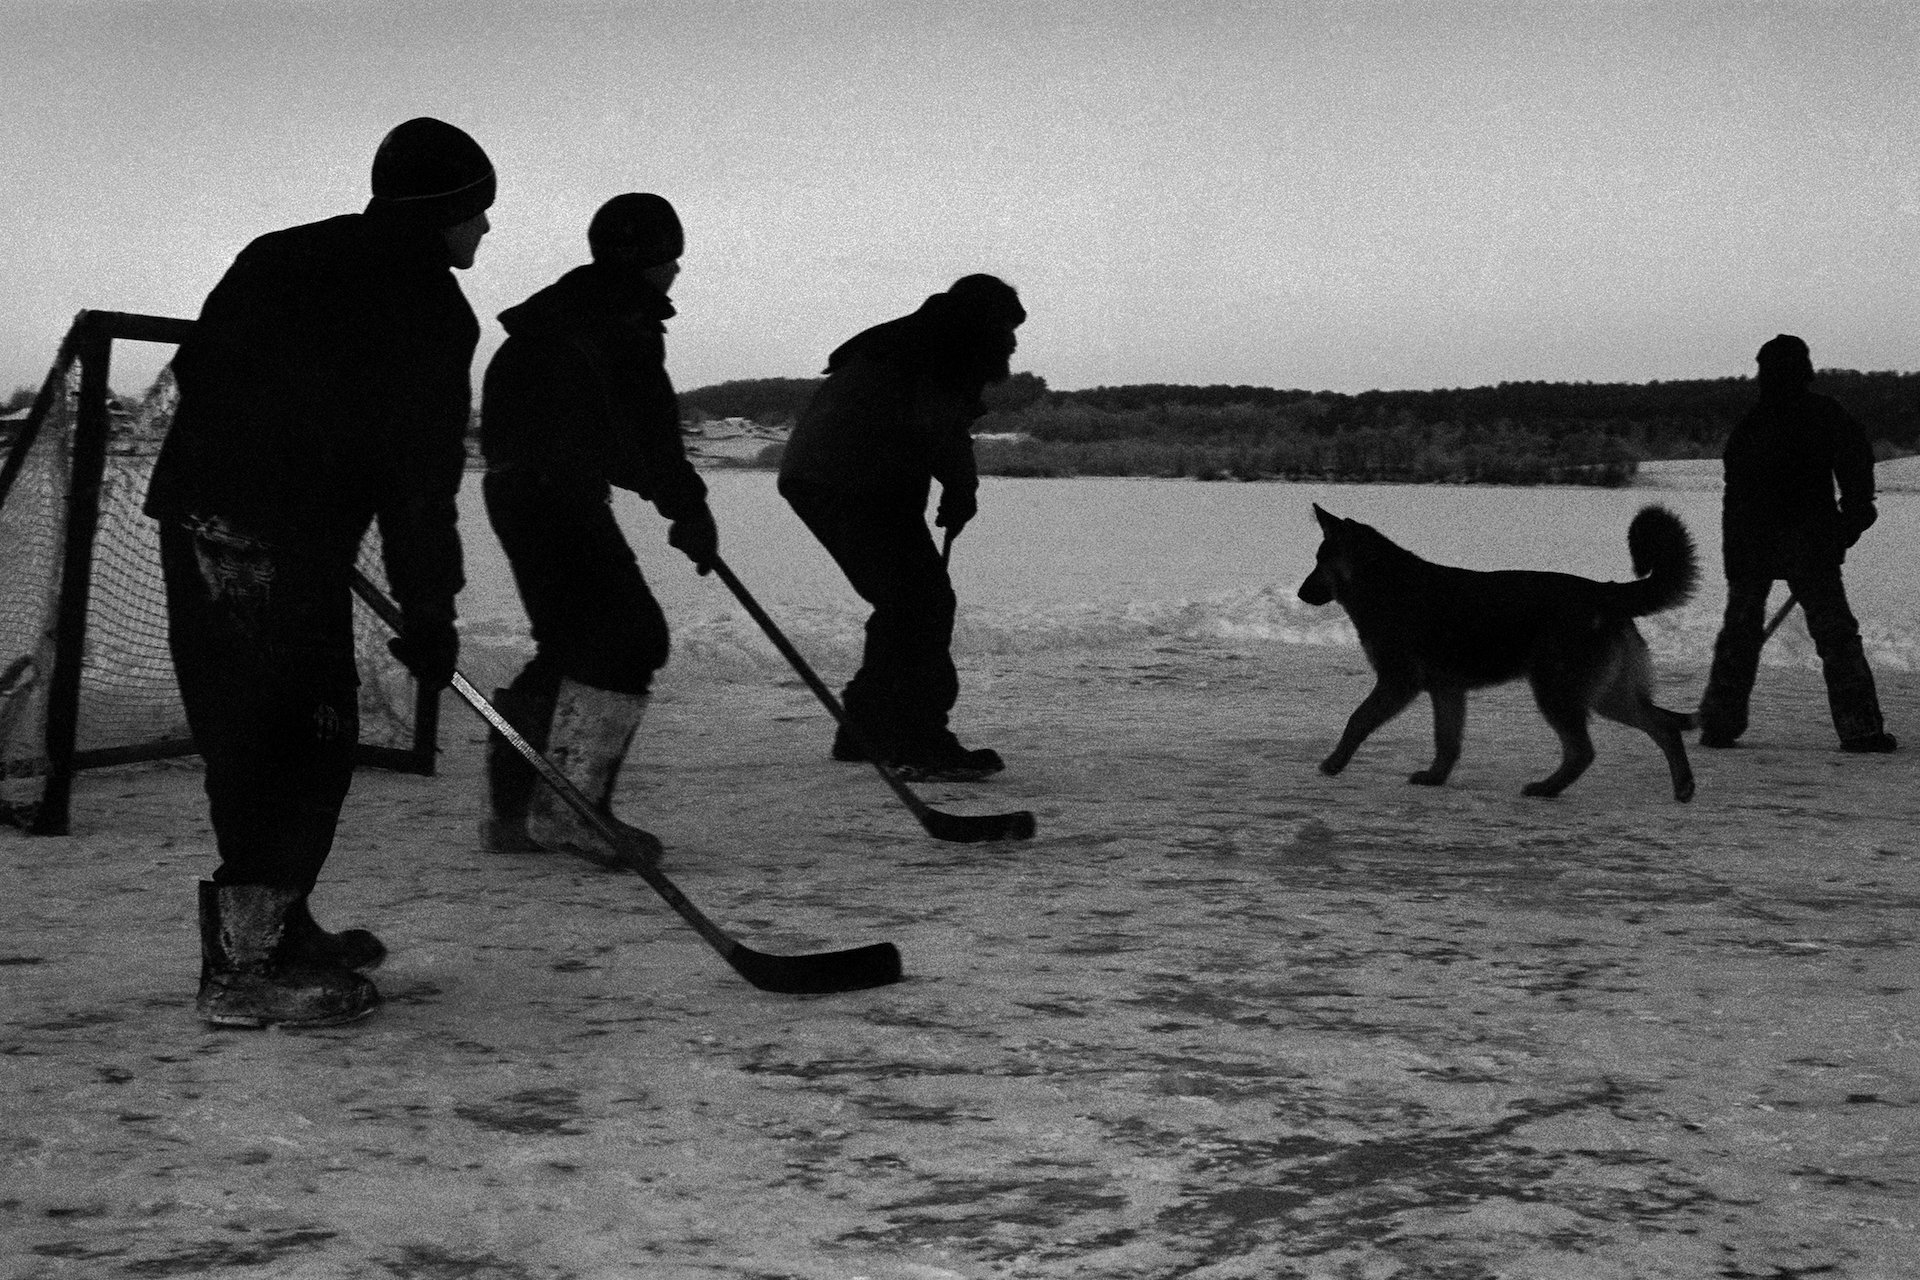 Hockey on the lake, village of Pogost, Pudozh district, Karelia, Russia (2009)